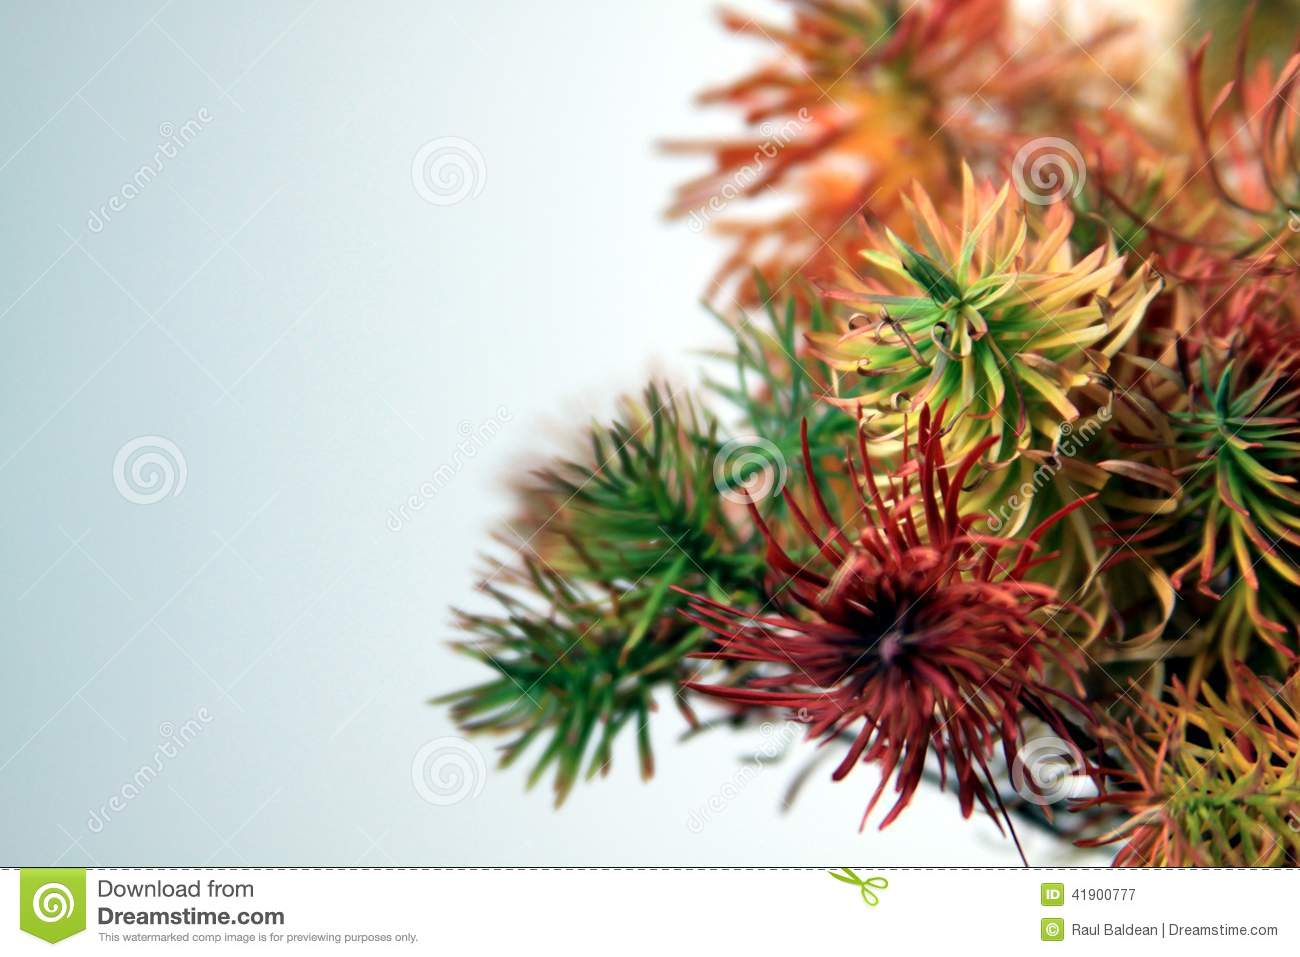 Coloured plants on white background 03